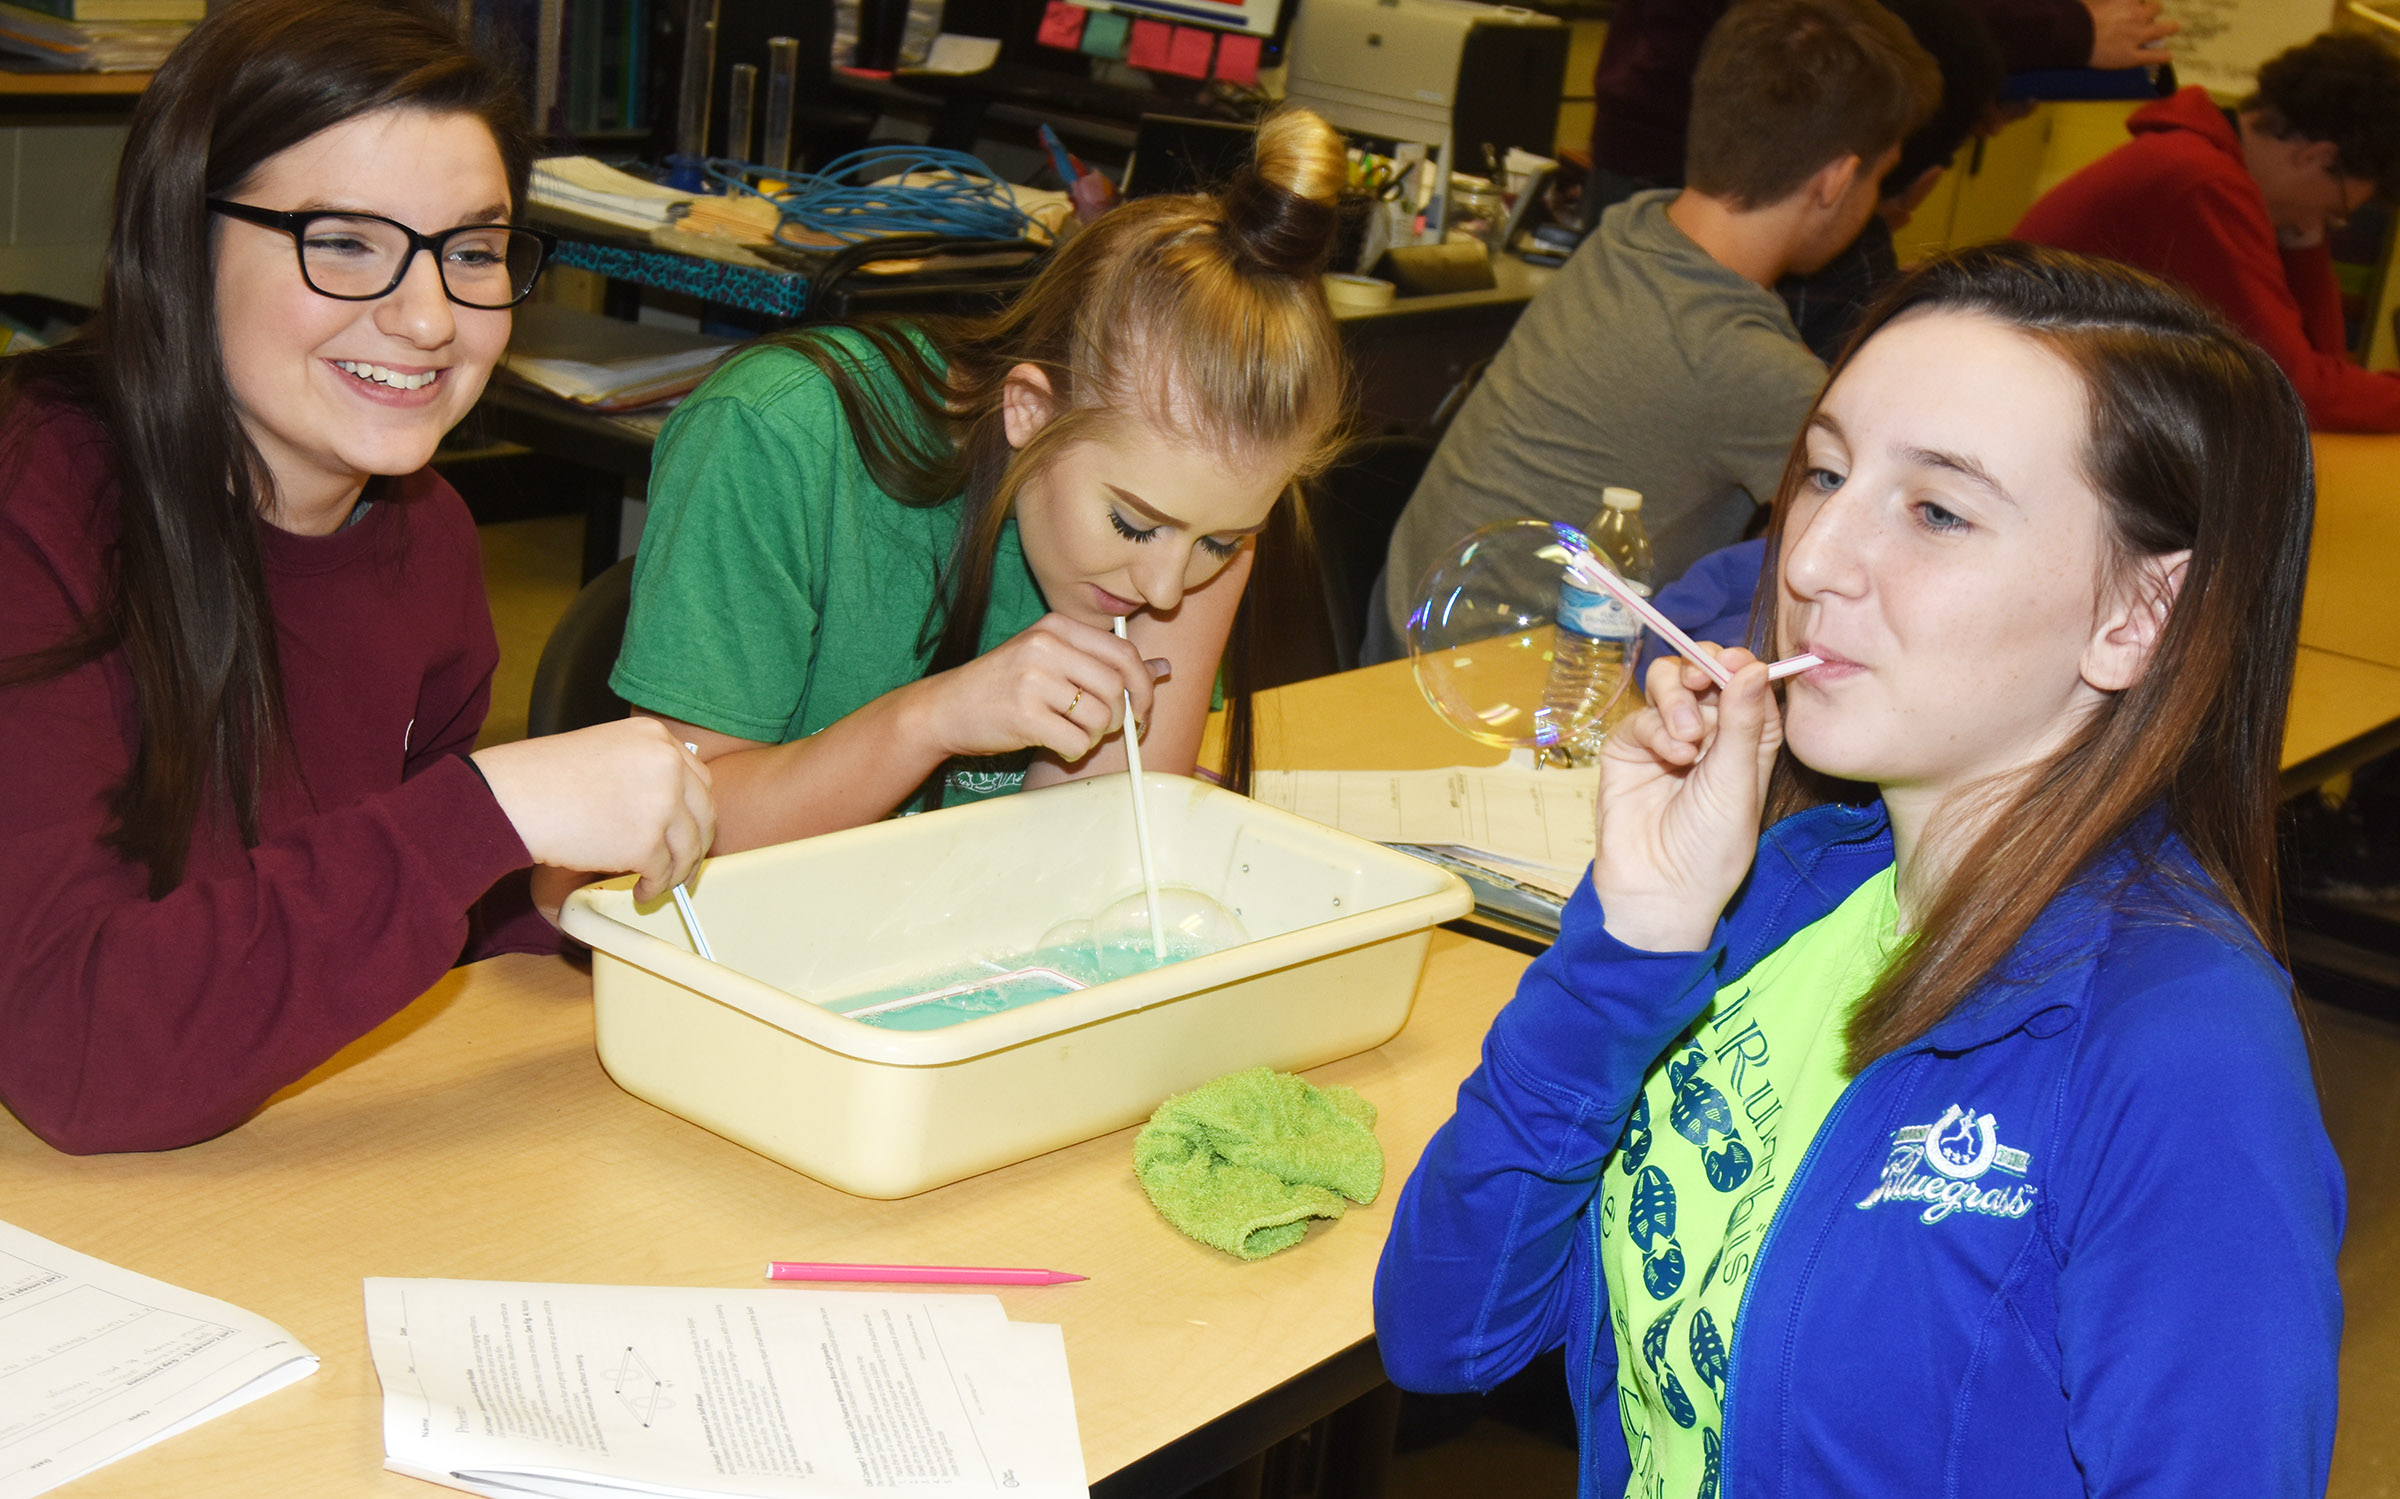 CHS sophomore Zoe McAninch blows a bubble as classmates Sydney Wilson, at left, and Isabella Osborne watch.